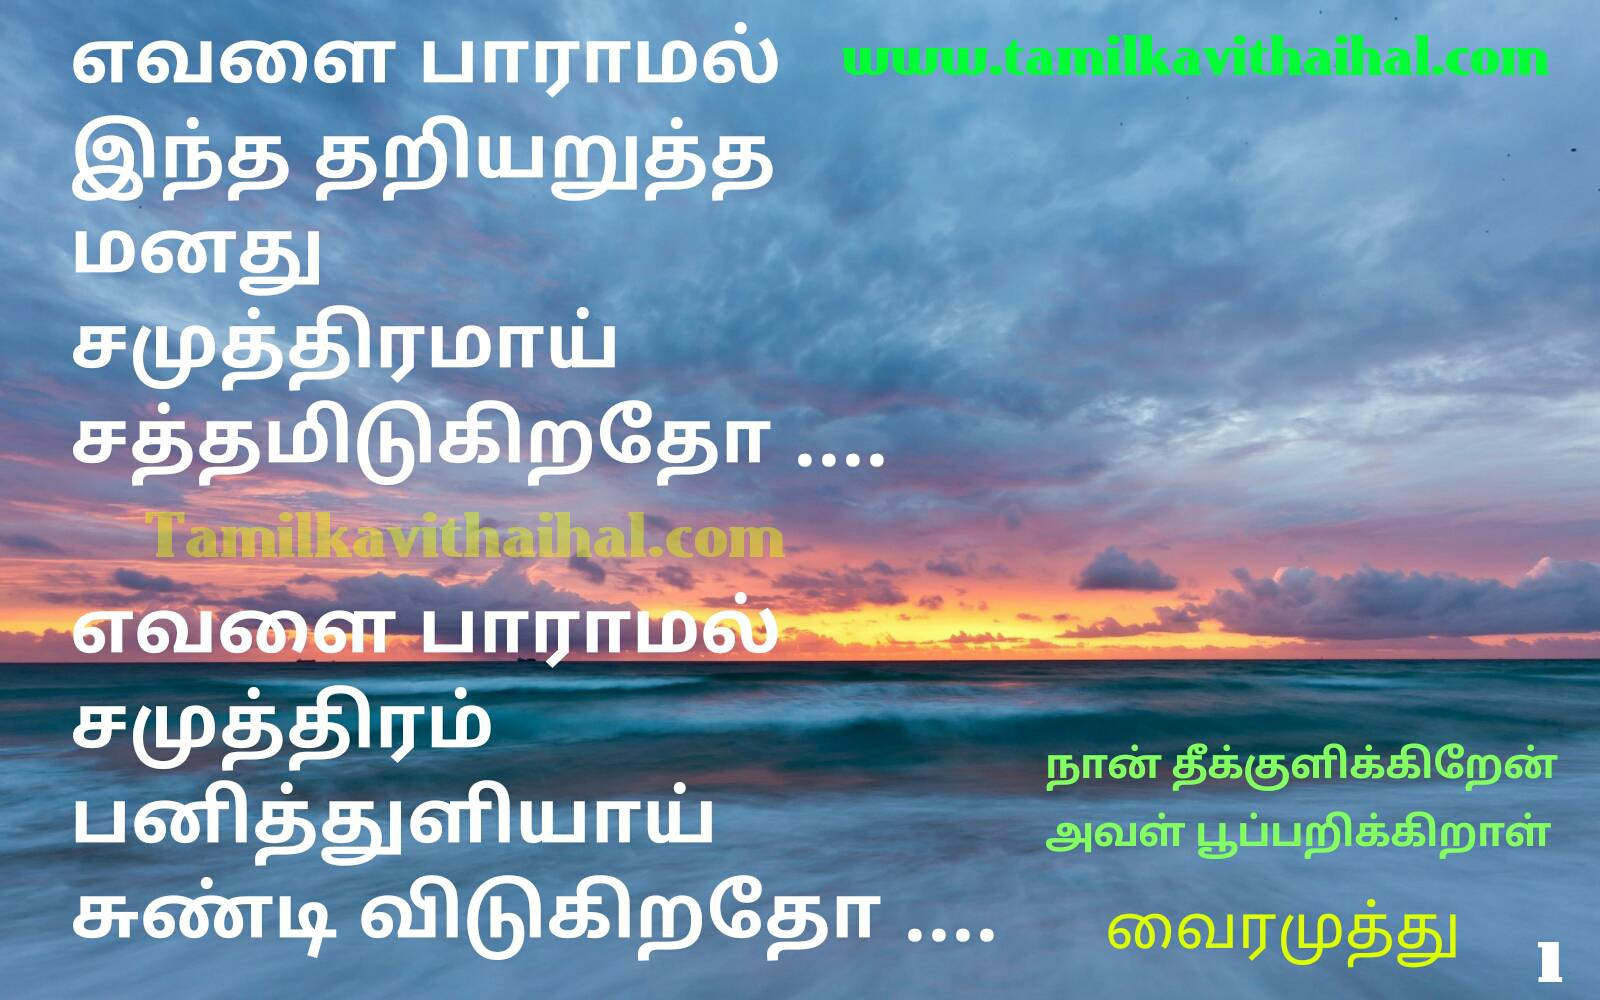 Beautiful vairamuthu tamil kavithaigal naan thekkulikiren aval pooparikiraal books love story boy emotional feel image 1